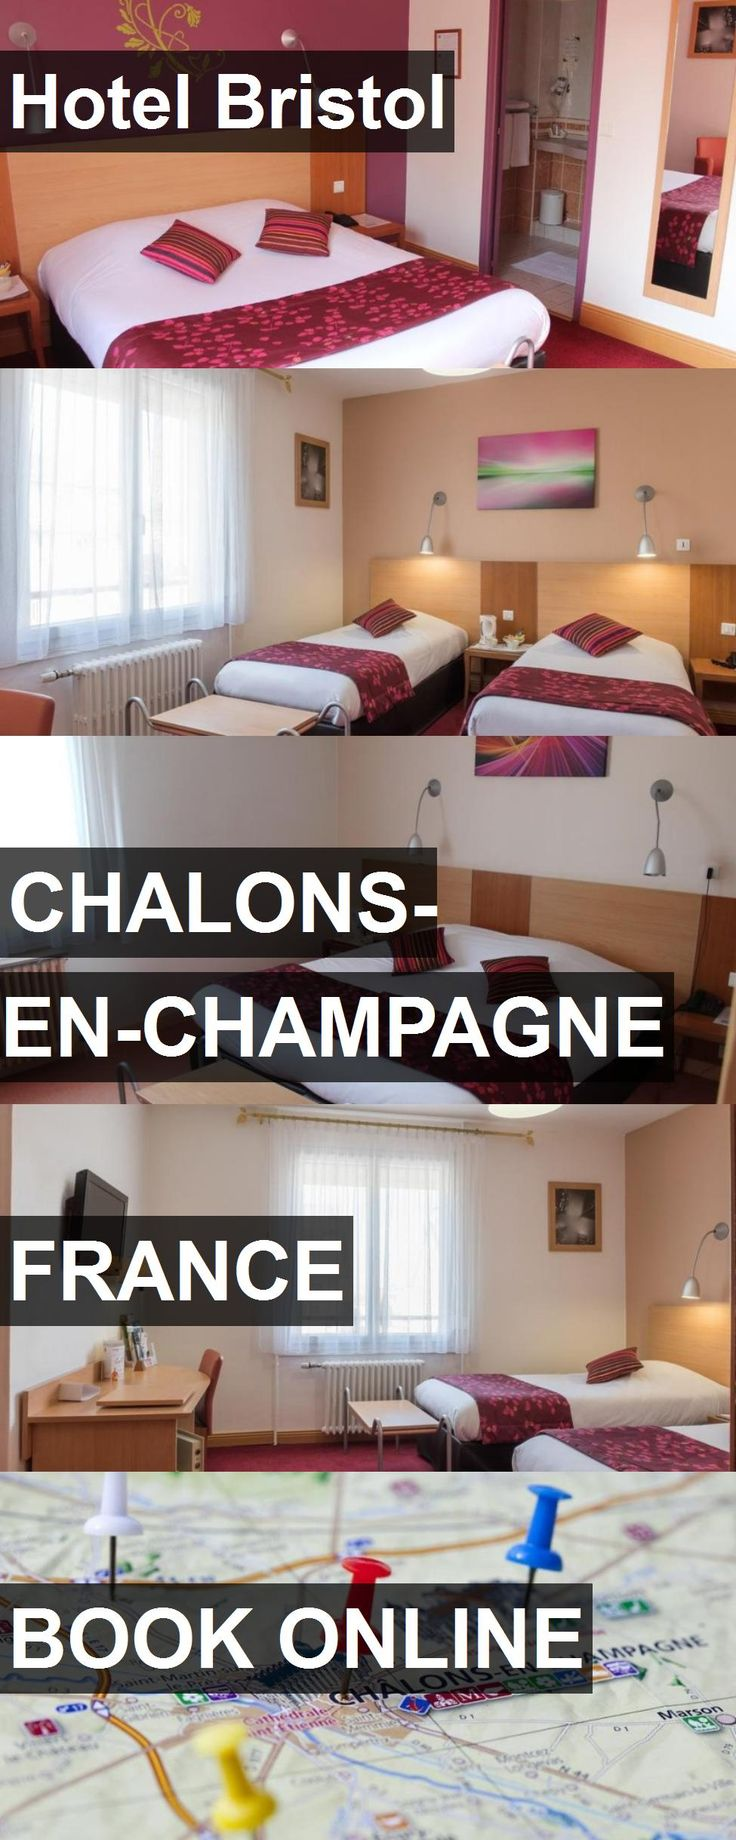 Hotel Bristol in Chalons-en-Champagne, France. For more information, photos, reviews and best prices please follow the link. #France #Chalons-en-Champagne #travel #vacation #hotel